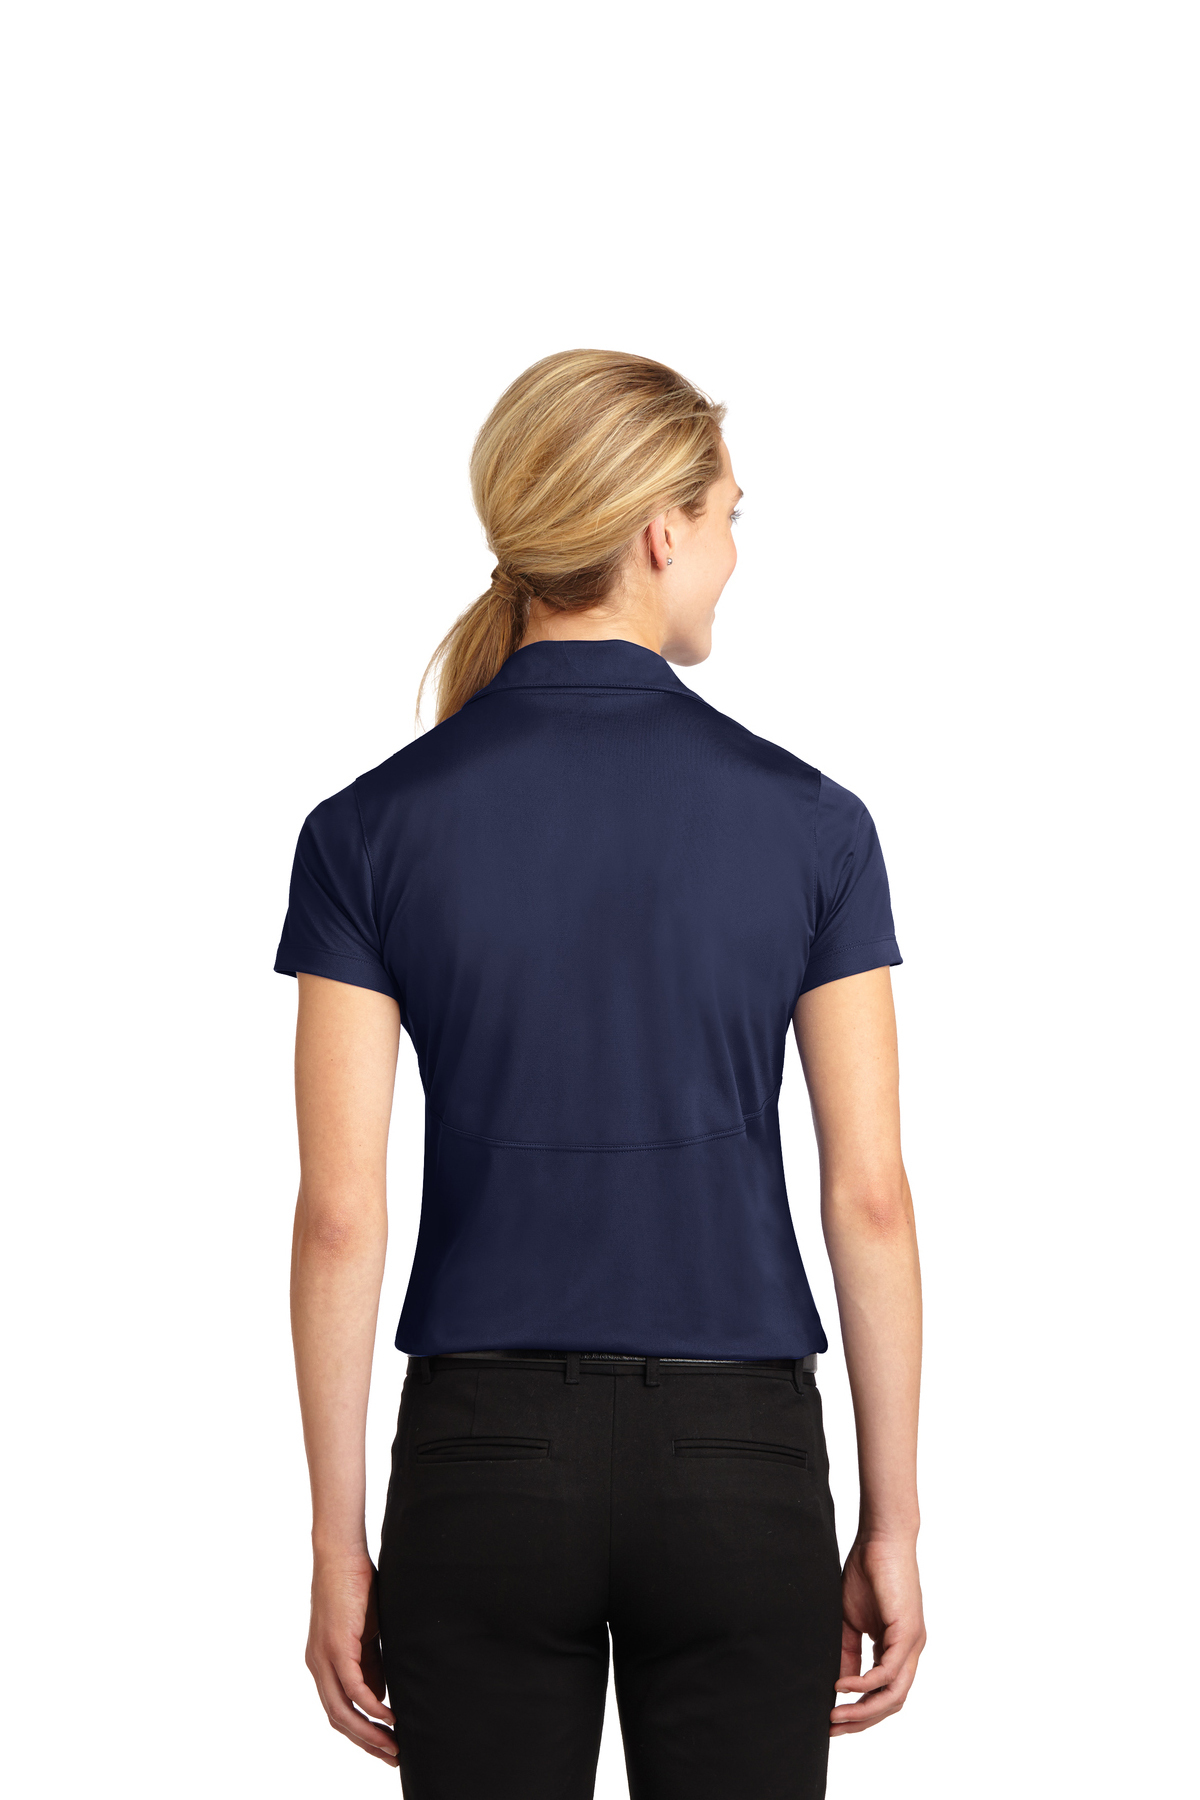 Sport Tek Ladies Micropique Sport Wick Polo Ladies Women Polos Knits Sanmar Not just a sharp look—it's snag resistant, too! sport tek ladies micropique sport wick